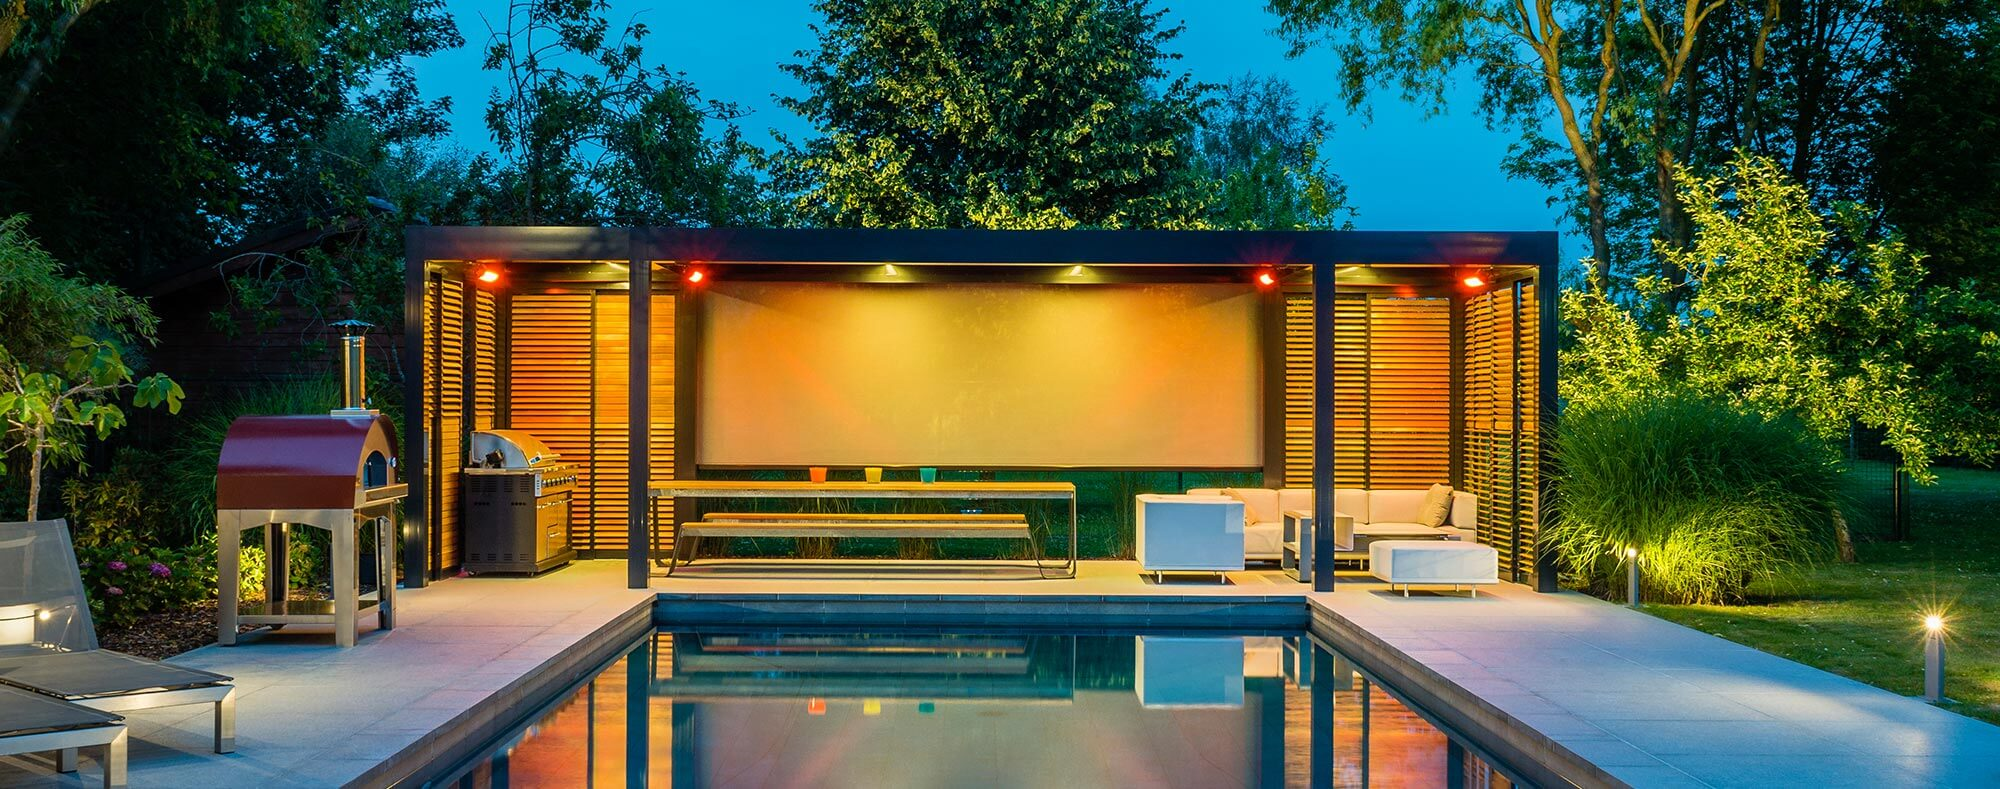 Luxury electric pergola shade by the pool